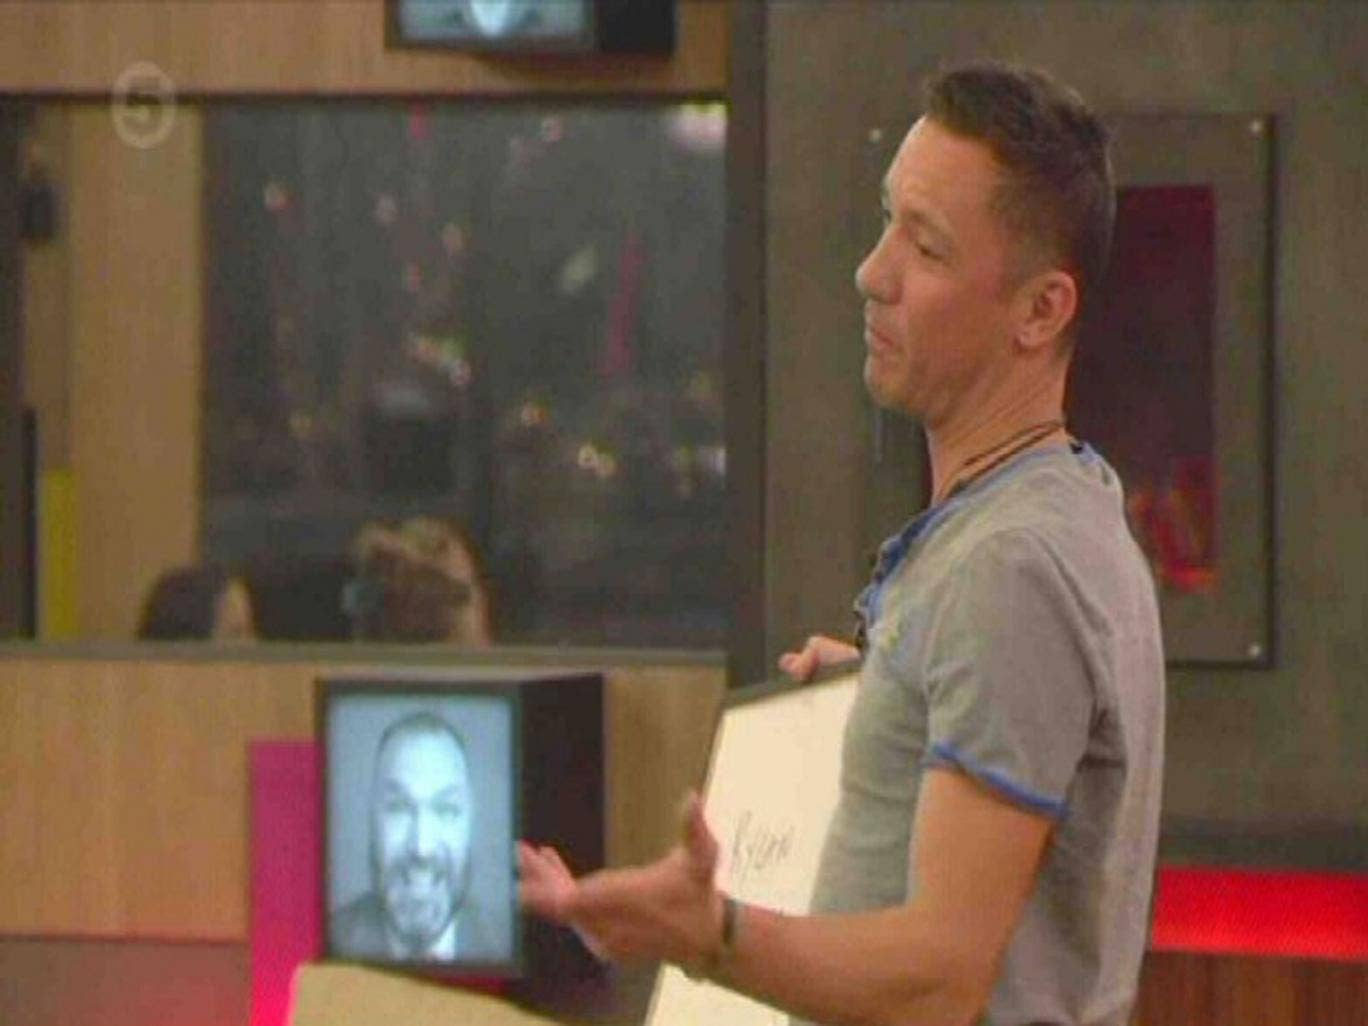 Frankie Dettori is the one widely known CBB contestant